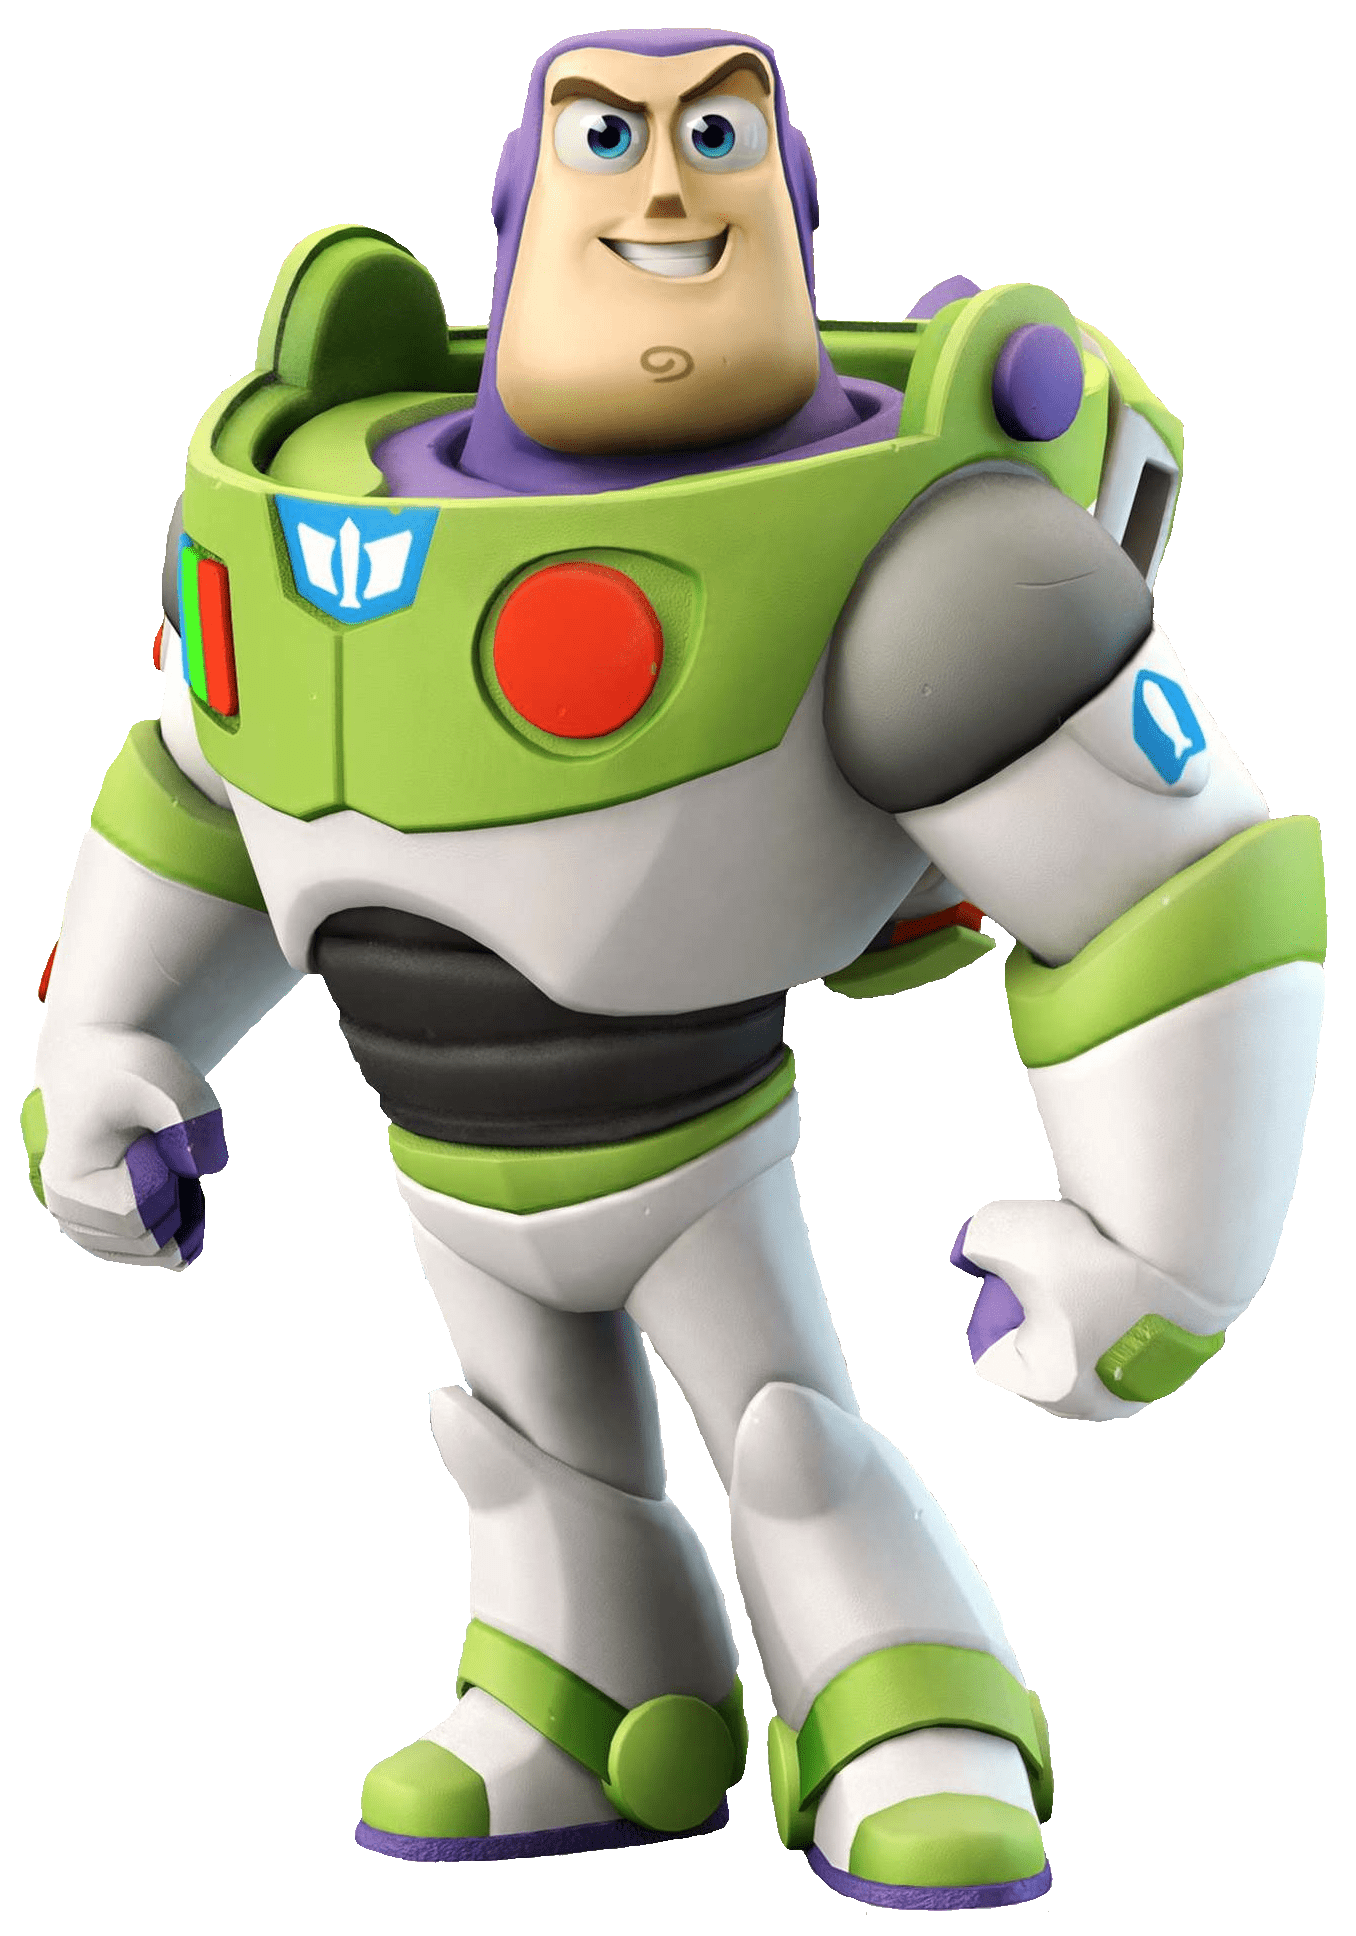 Buzz Lightyear Standing - PNG Toy Story